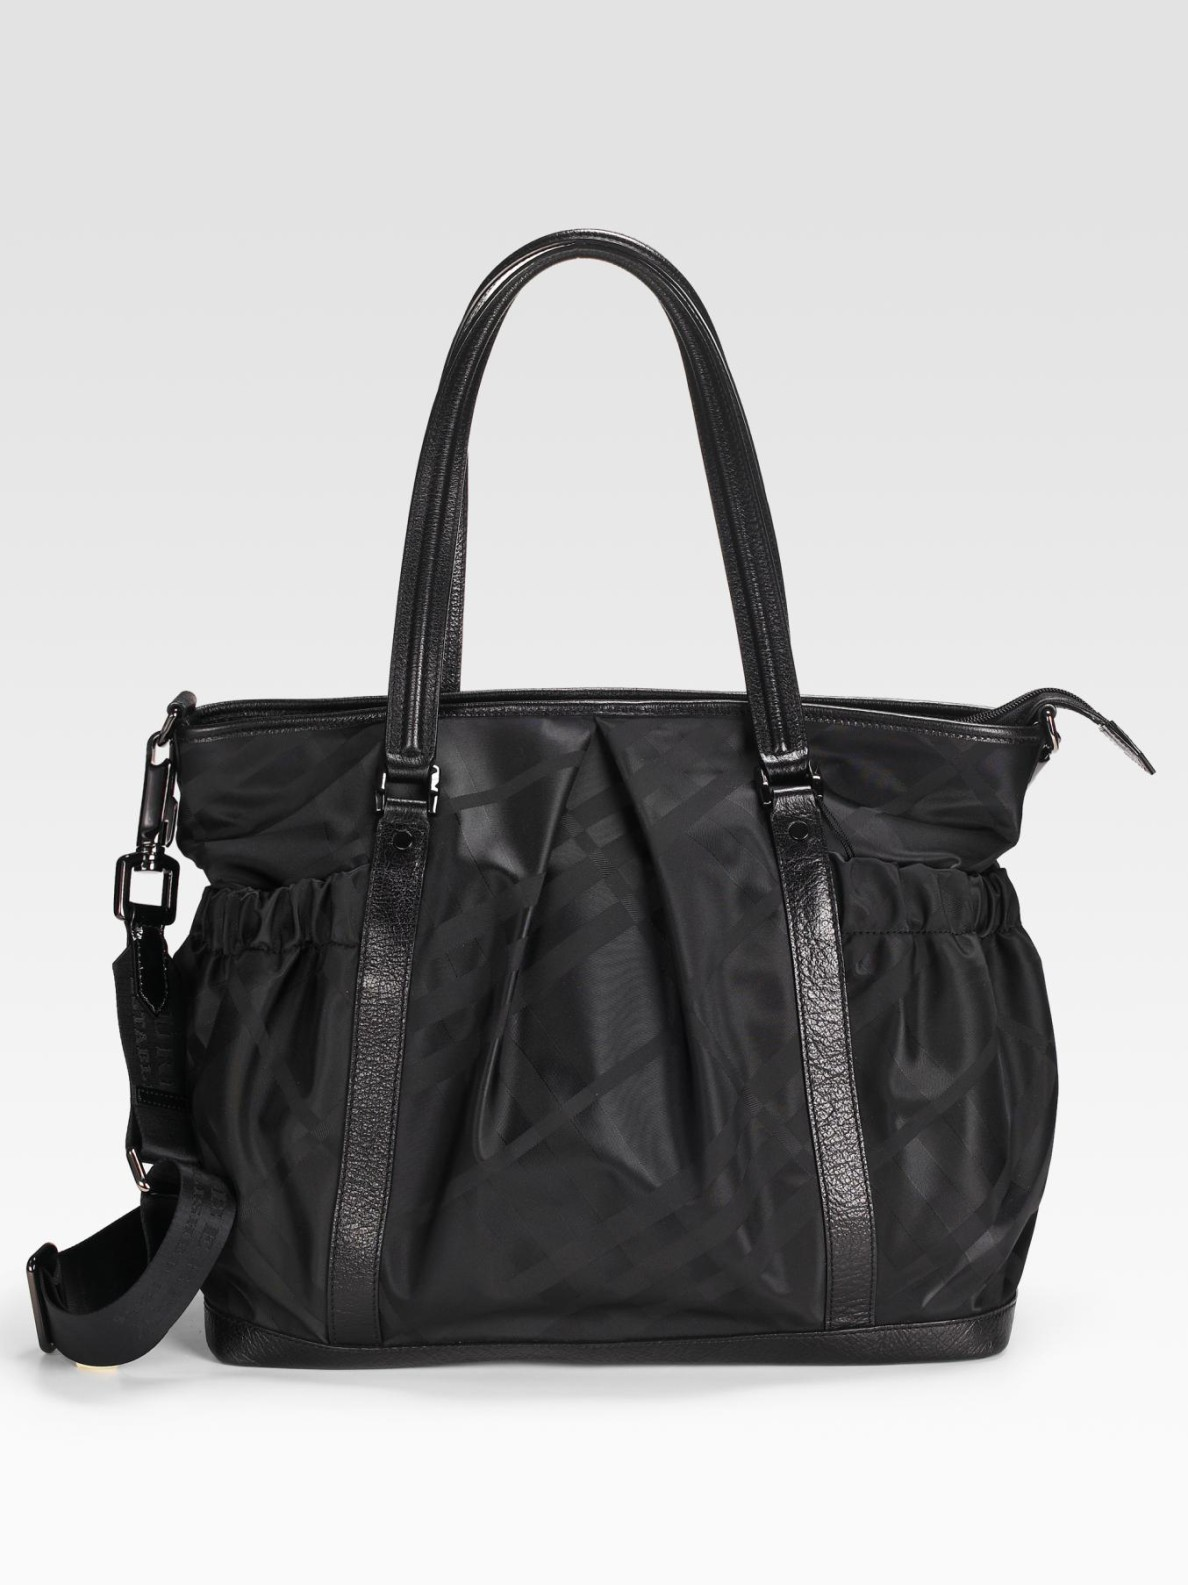 burberry tonal check diaper bag in black lyst. Black Bedroom Furniture Sets. Home Design Ideas